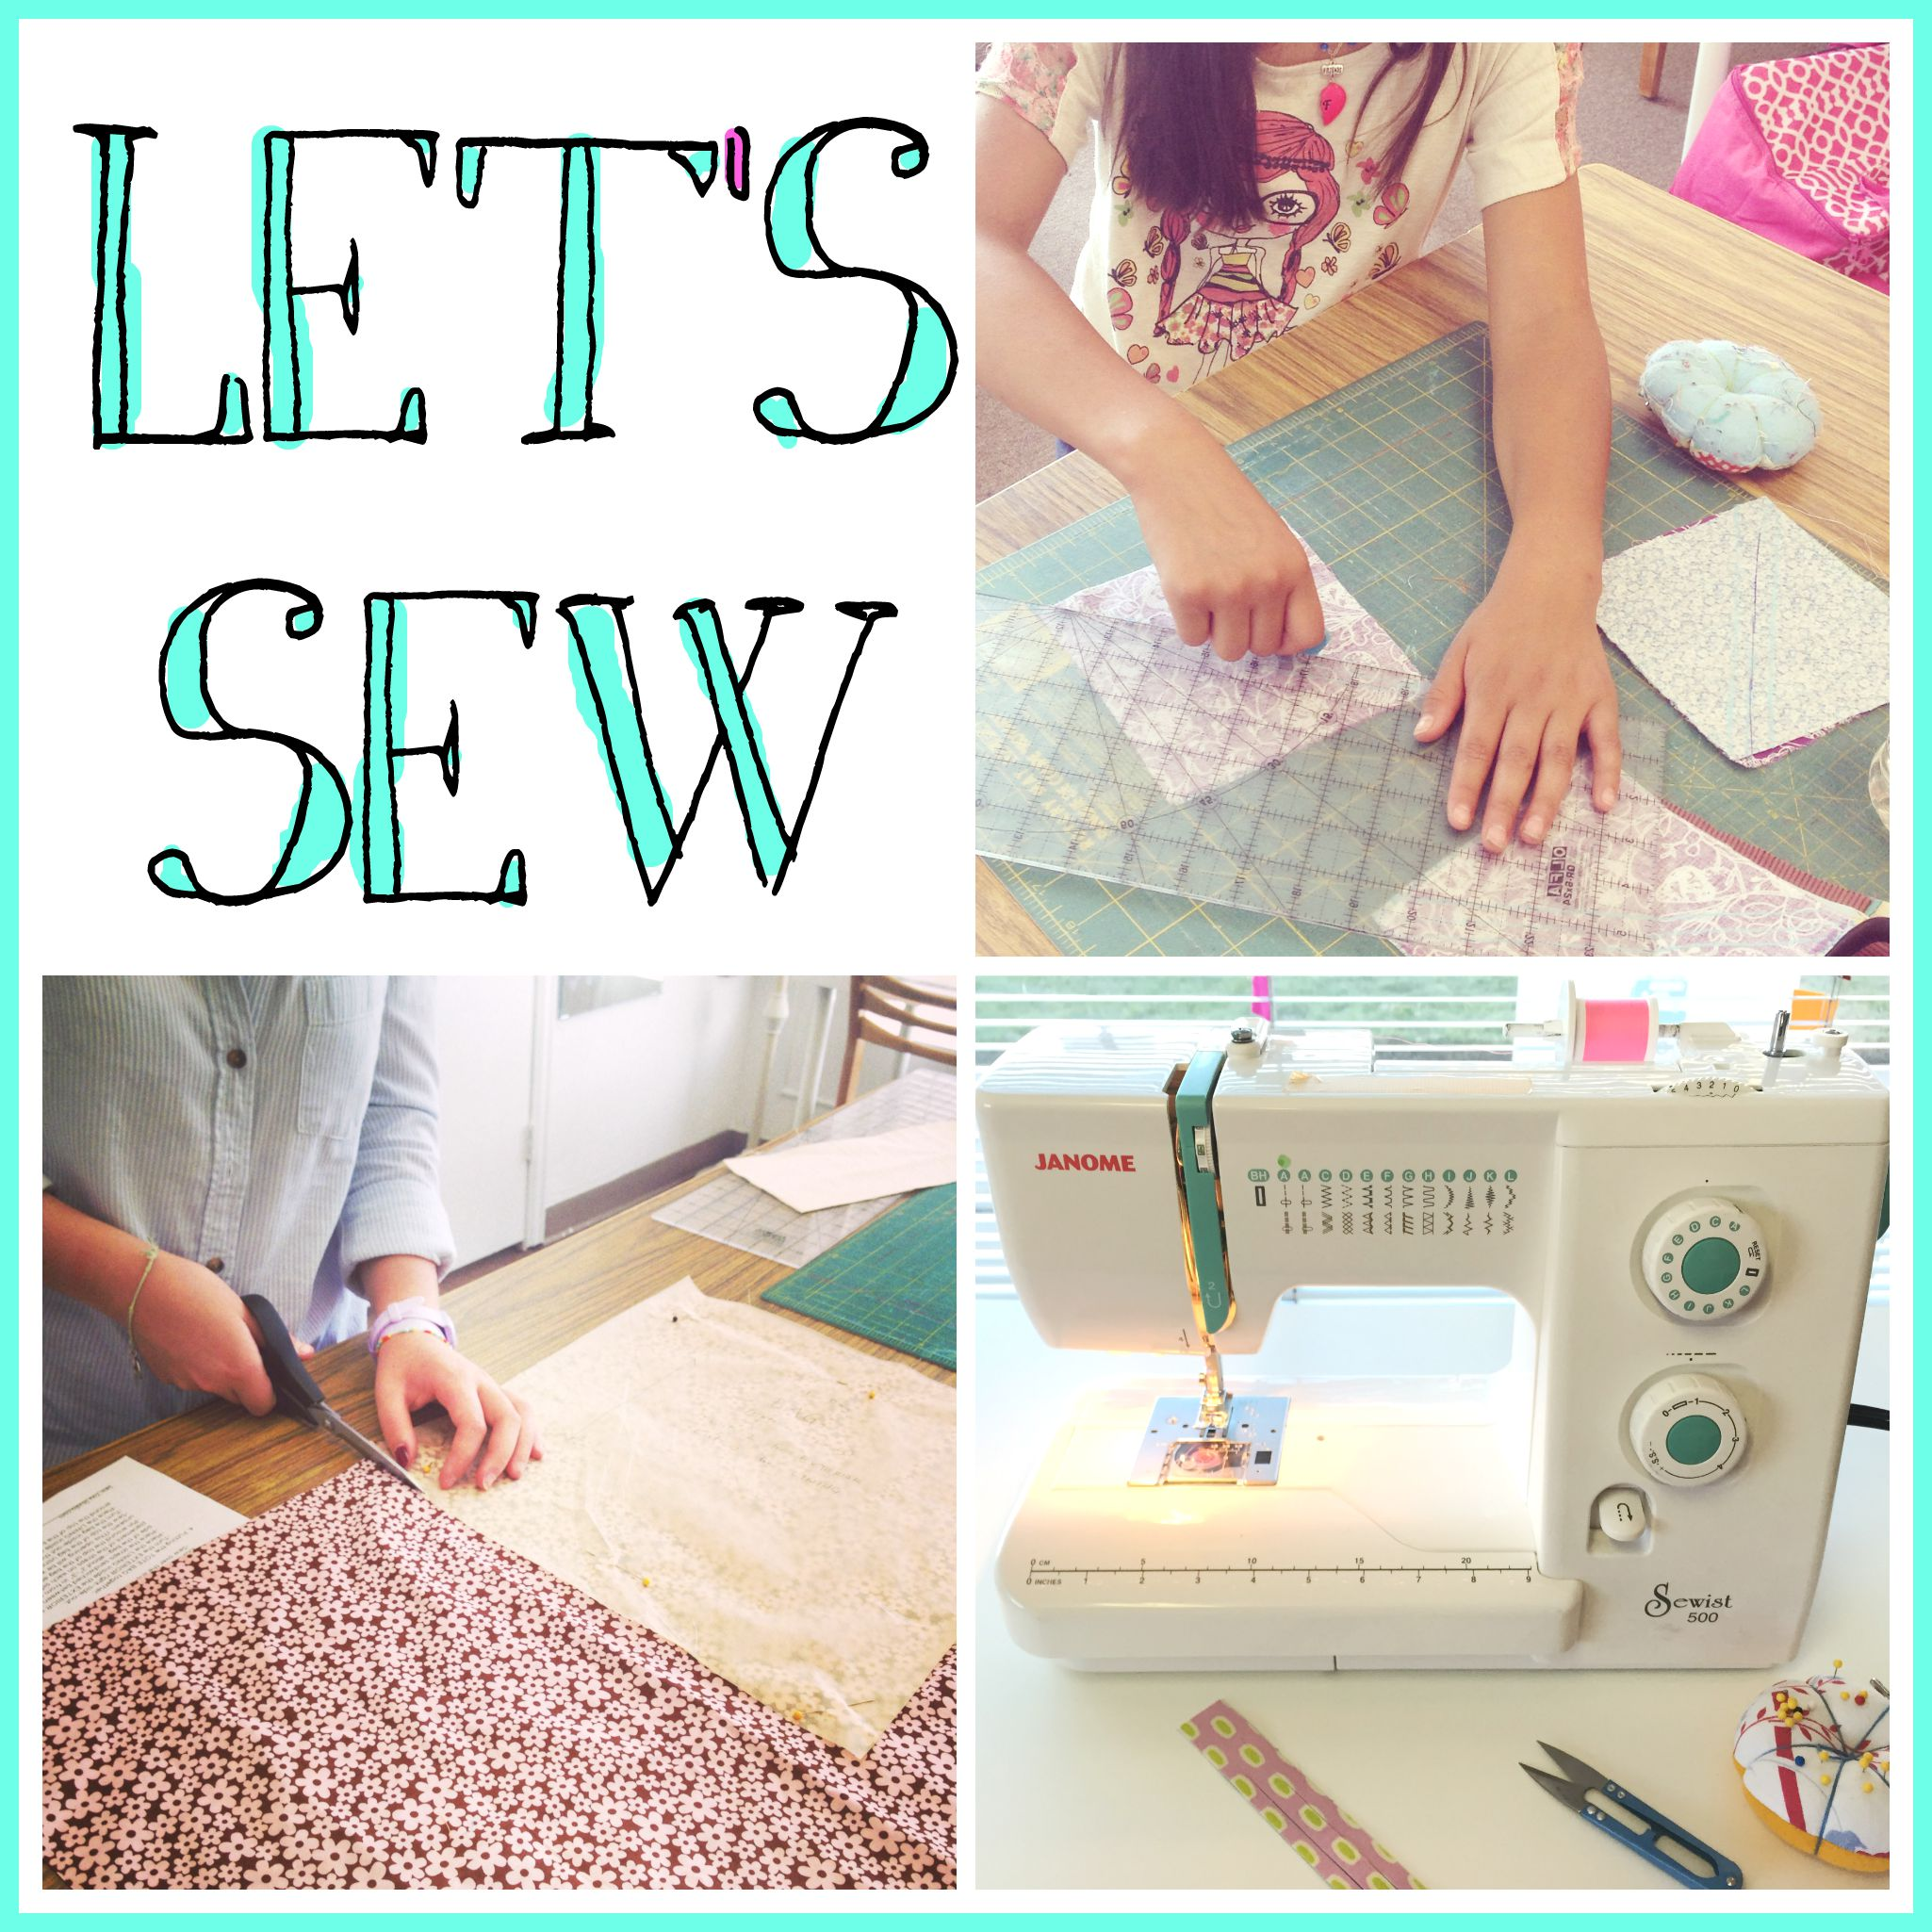 Let's Sew Series | Sew You Studio